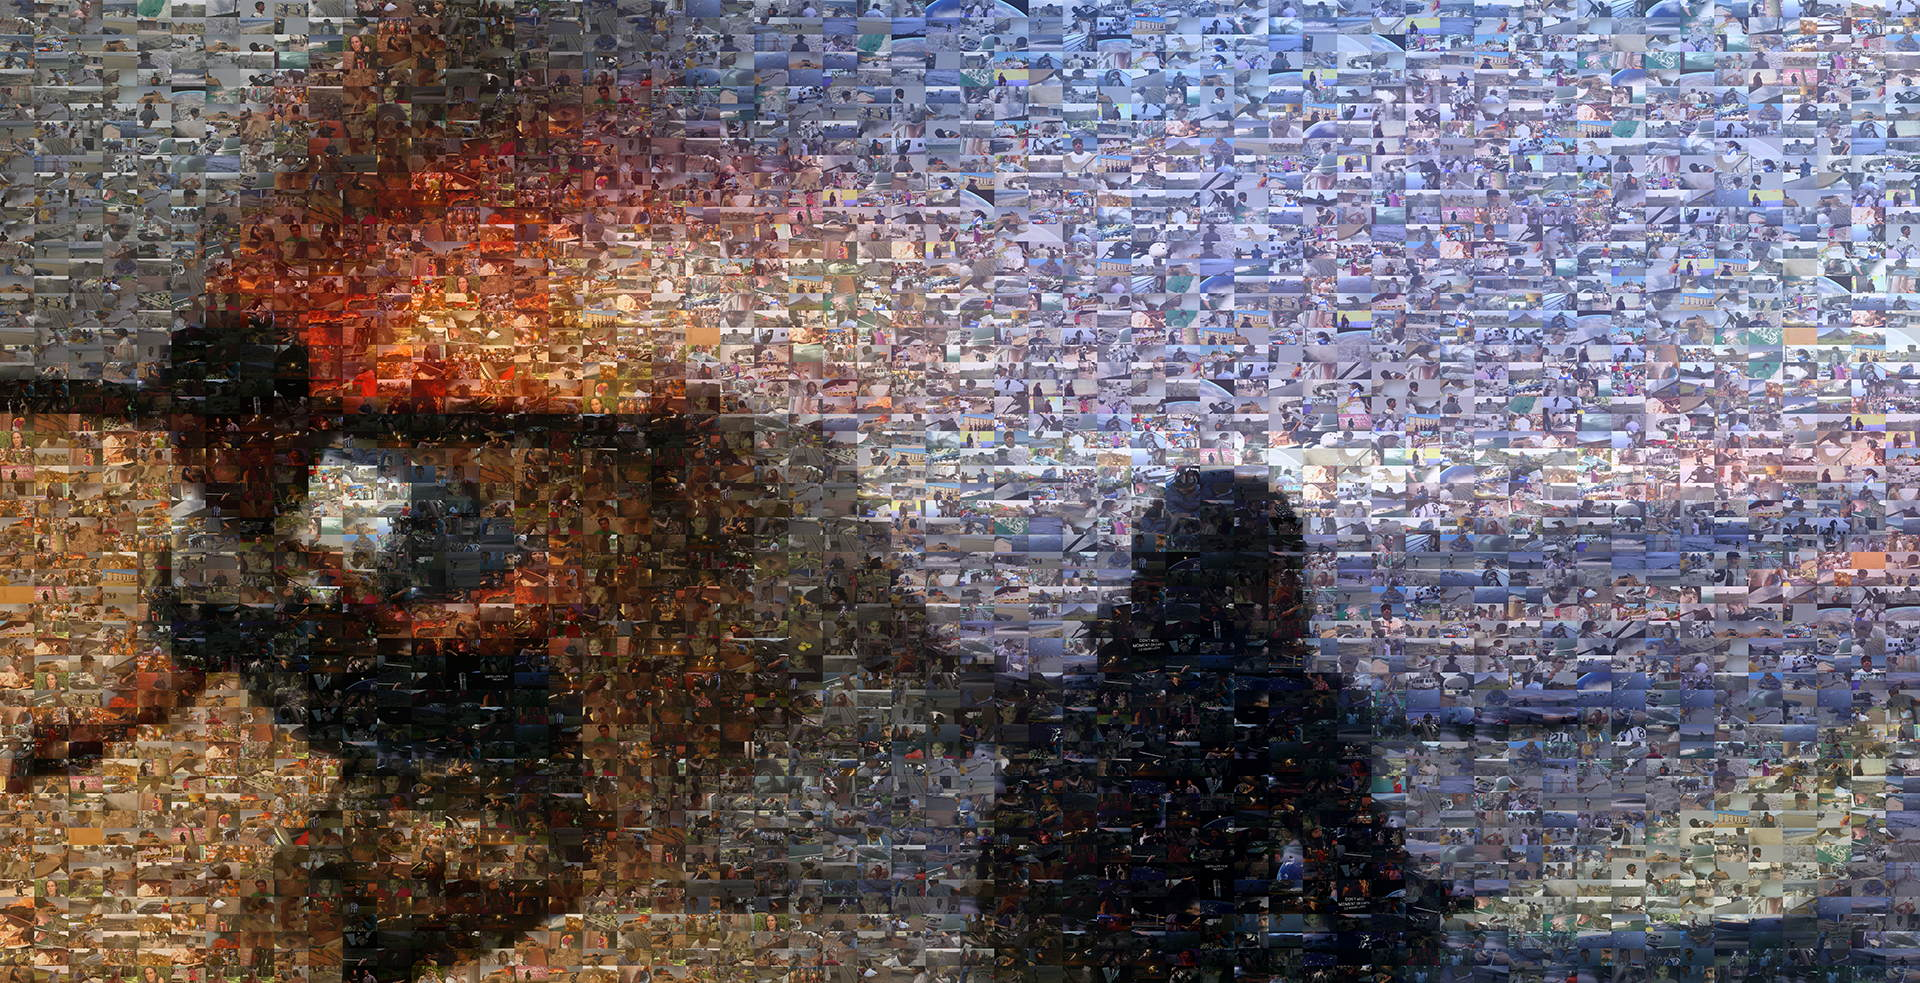 photo mosaic created using over 1000 various still images from the movie